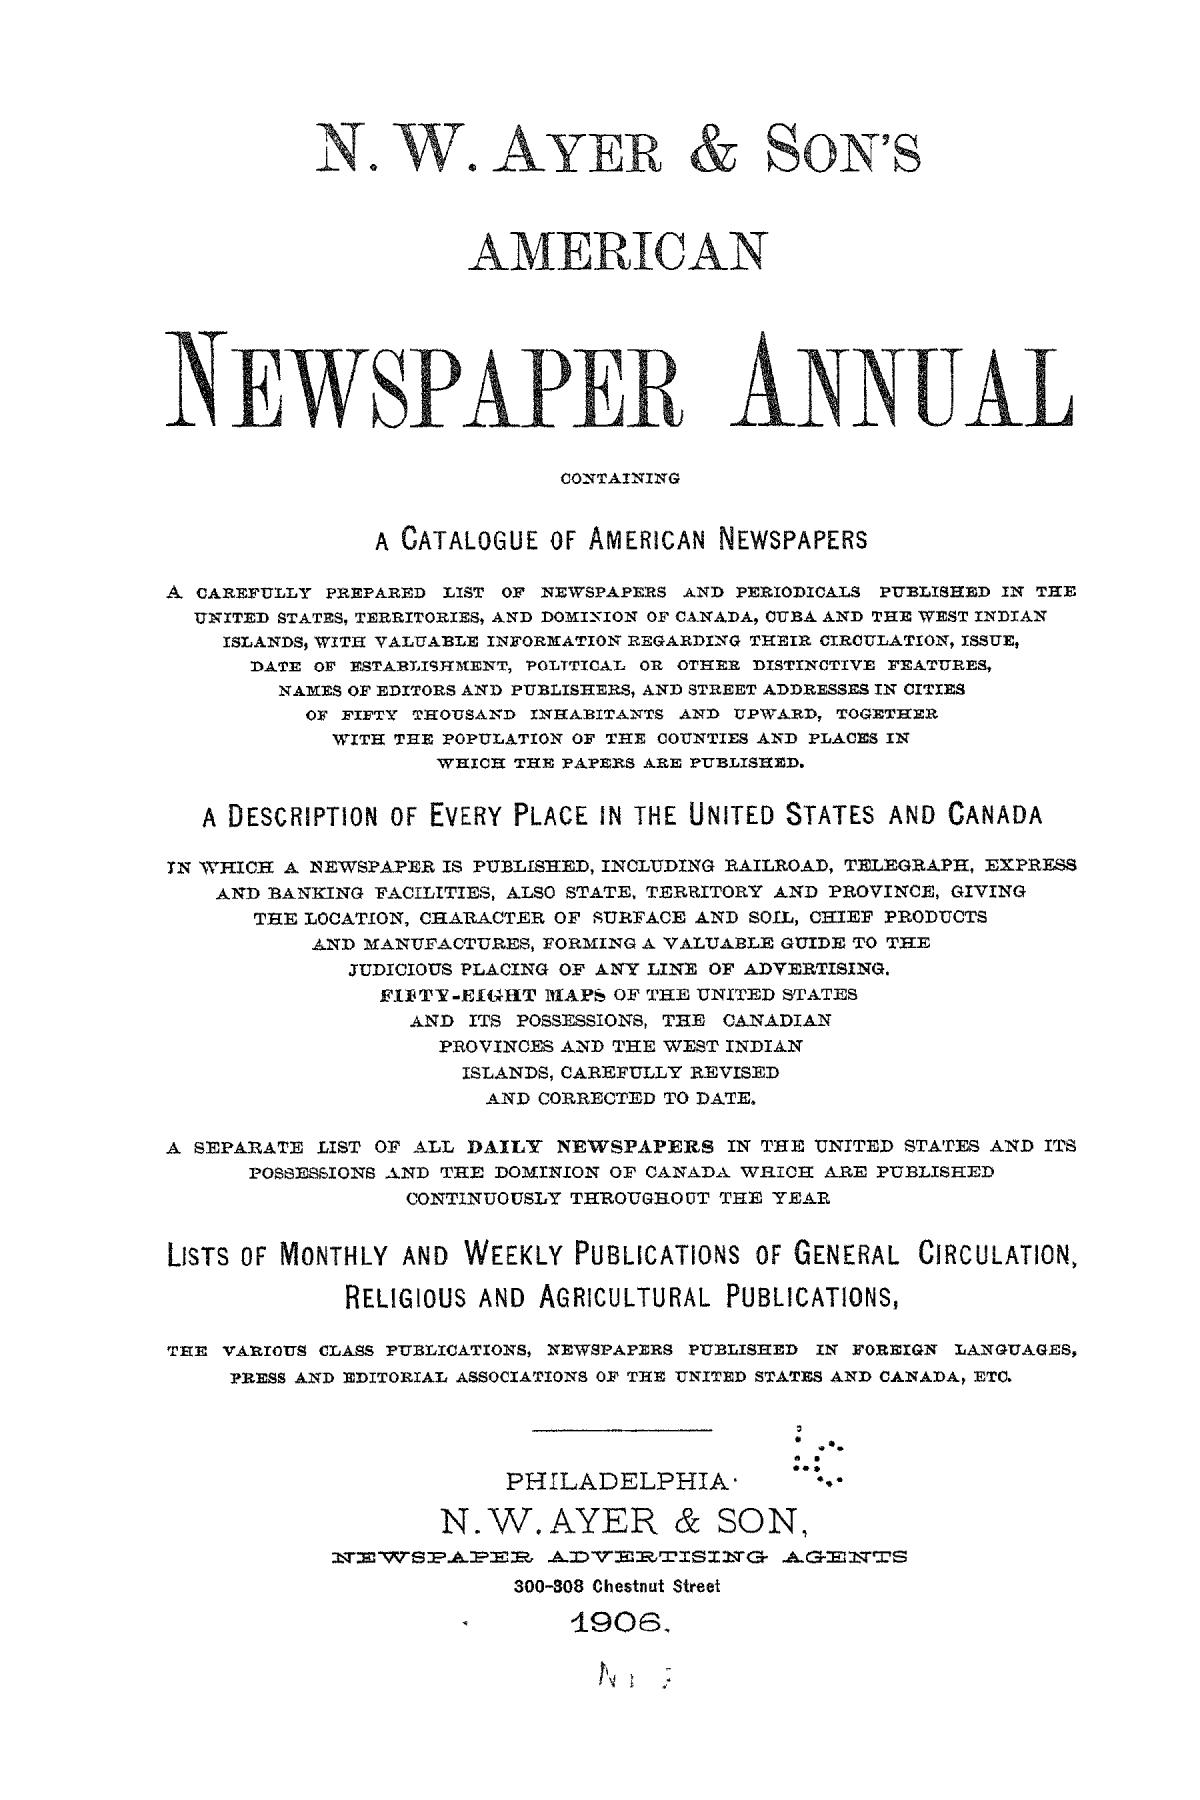 N. W. Ayer & Son's American Newspaper Annual: containing a Catalogue of American Newspapers, a List of All Newspapers of the United States and Canada, 1906, Volume 2                                                                                                      Title Page